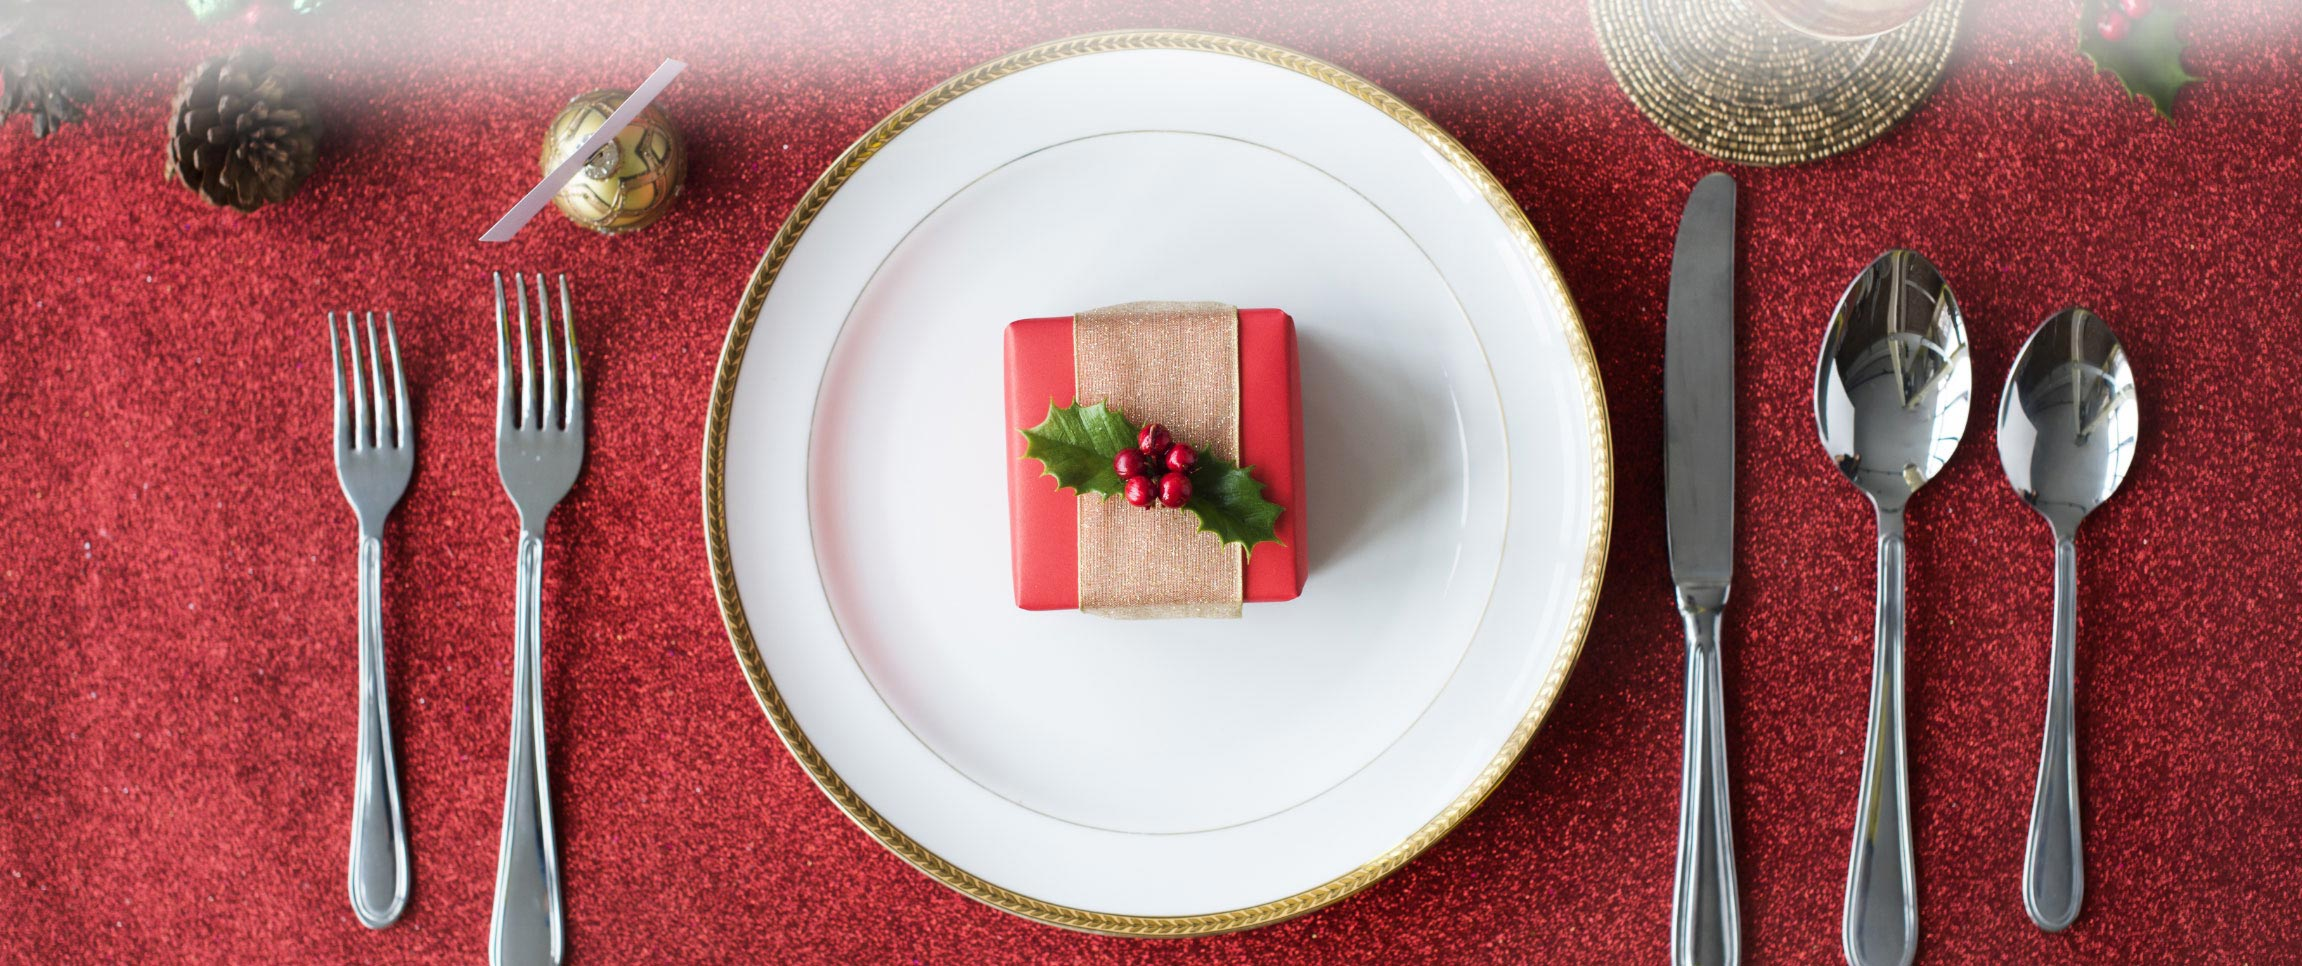 Preparing Your Restaurant for the Holidays